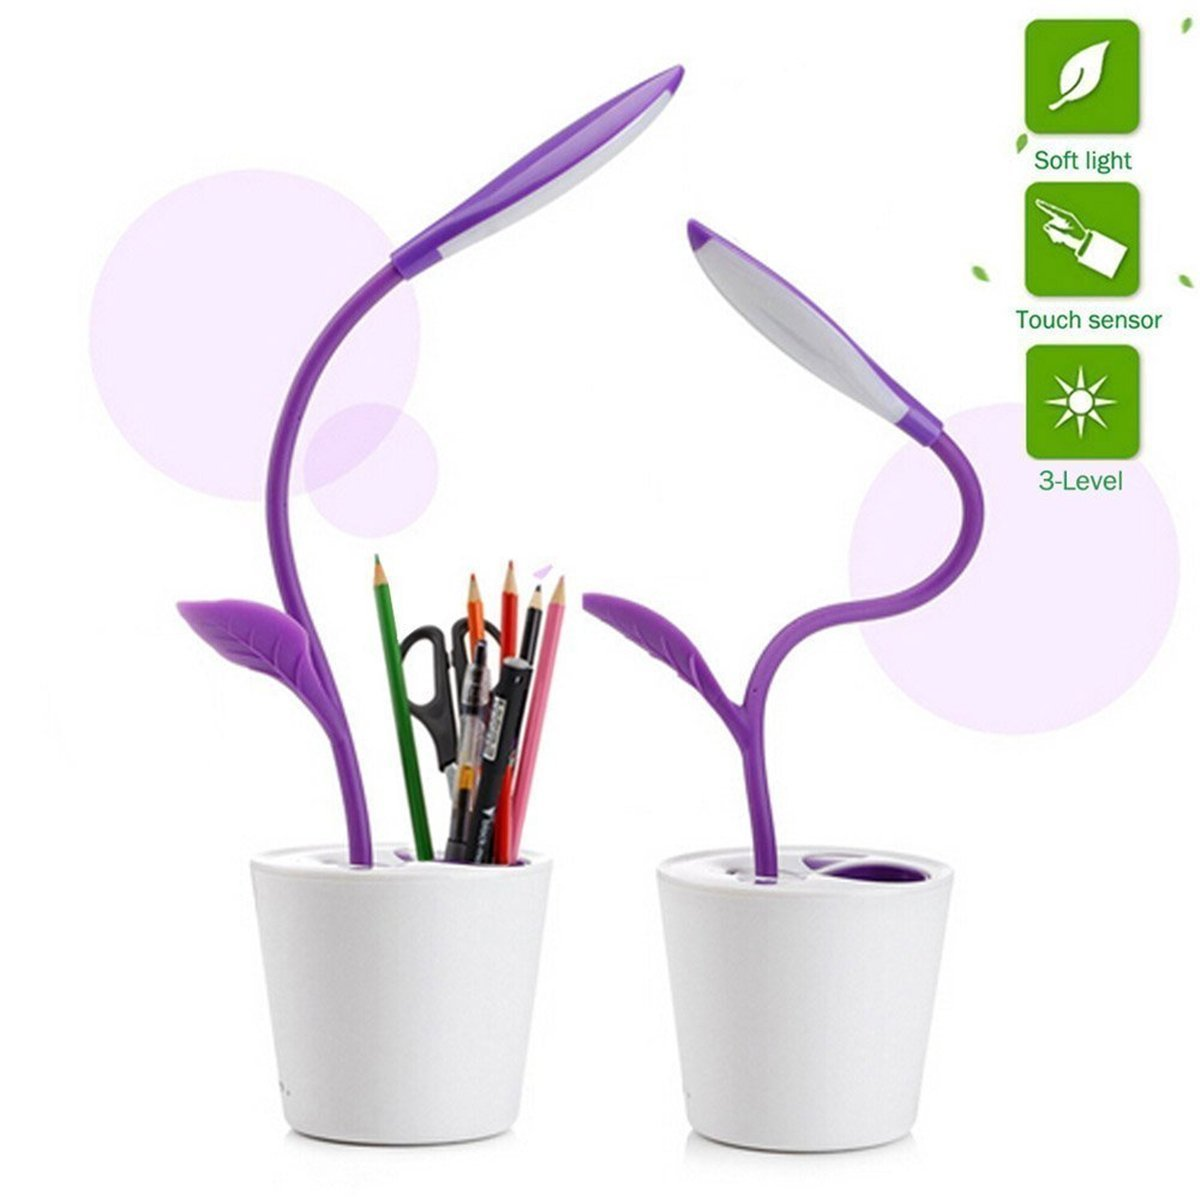 SheShy Flexible USB Touch LED Desk Lamp with 3-Level Dimmer and Decor Plant Pencil Anti-Myopia Professional Eye Protection Lamp Purple